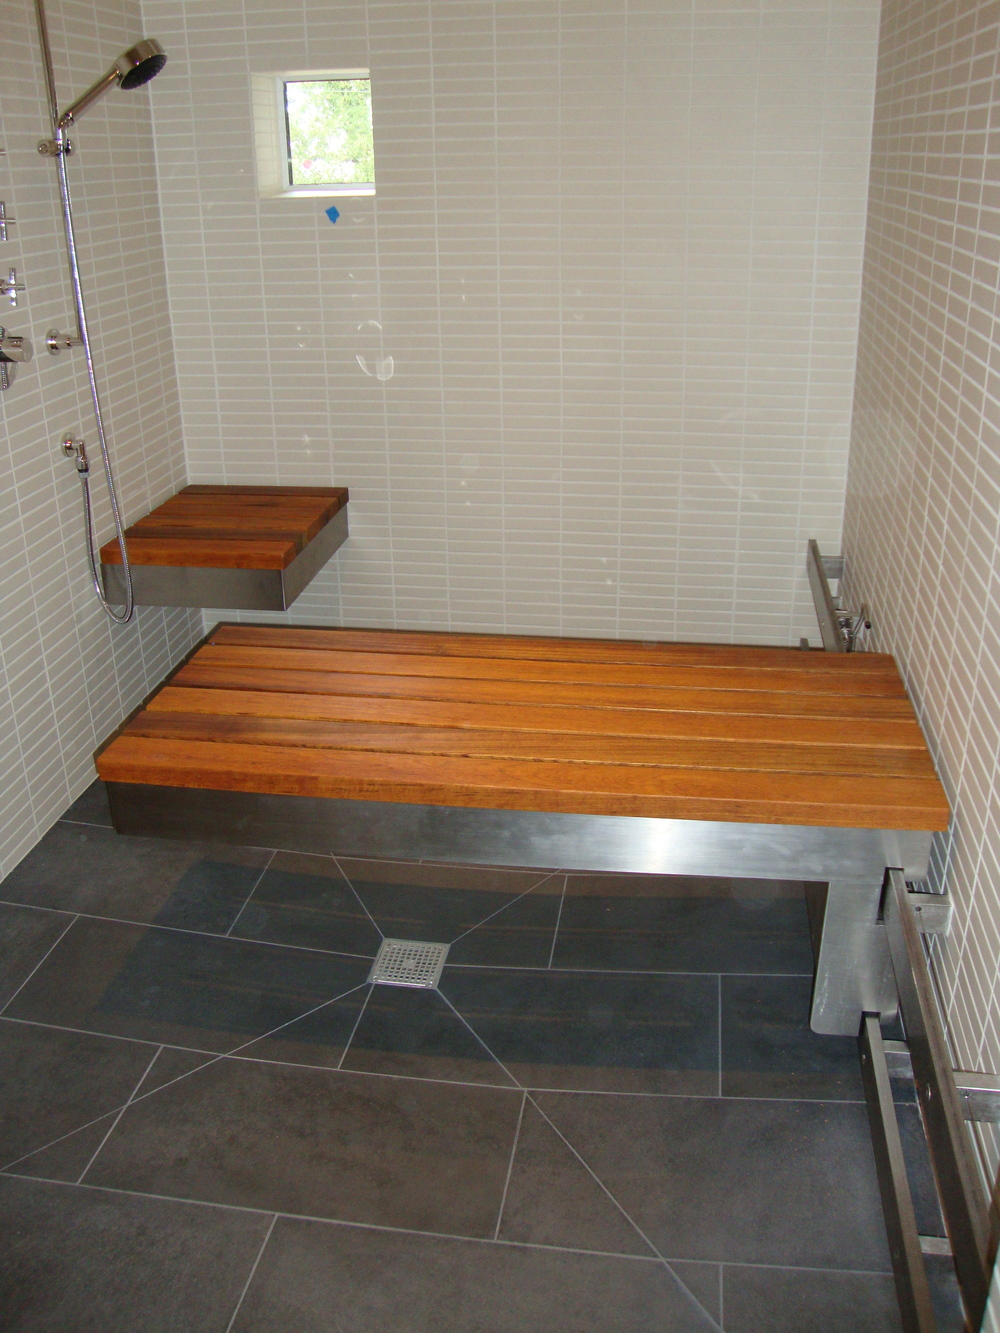 accessible story bench shower upper jpg handicap design handicapshowerbench i